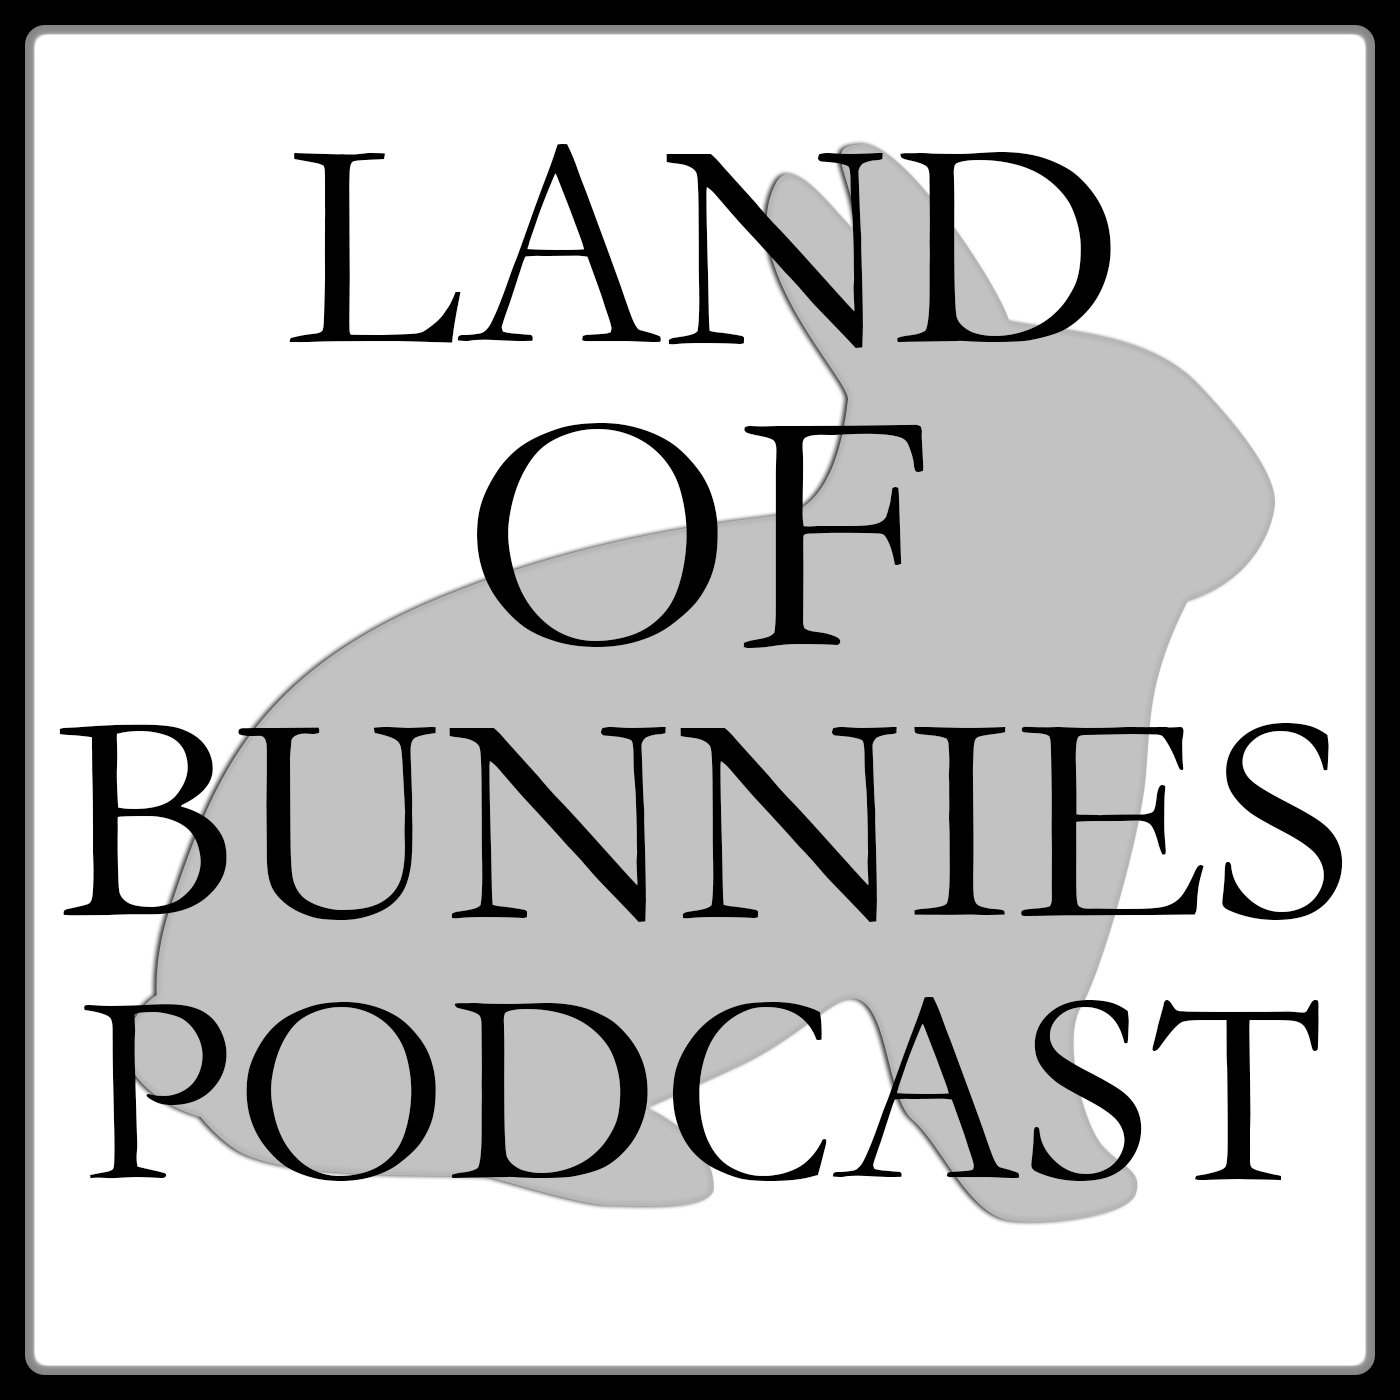 The Land of Bunnies Podcast